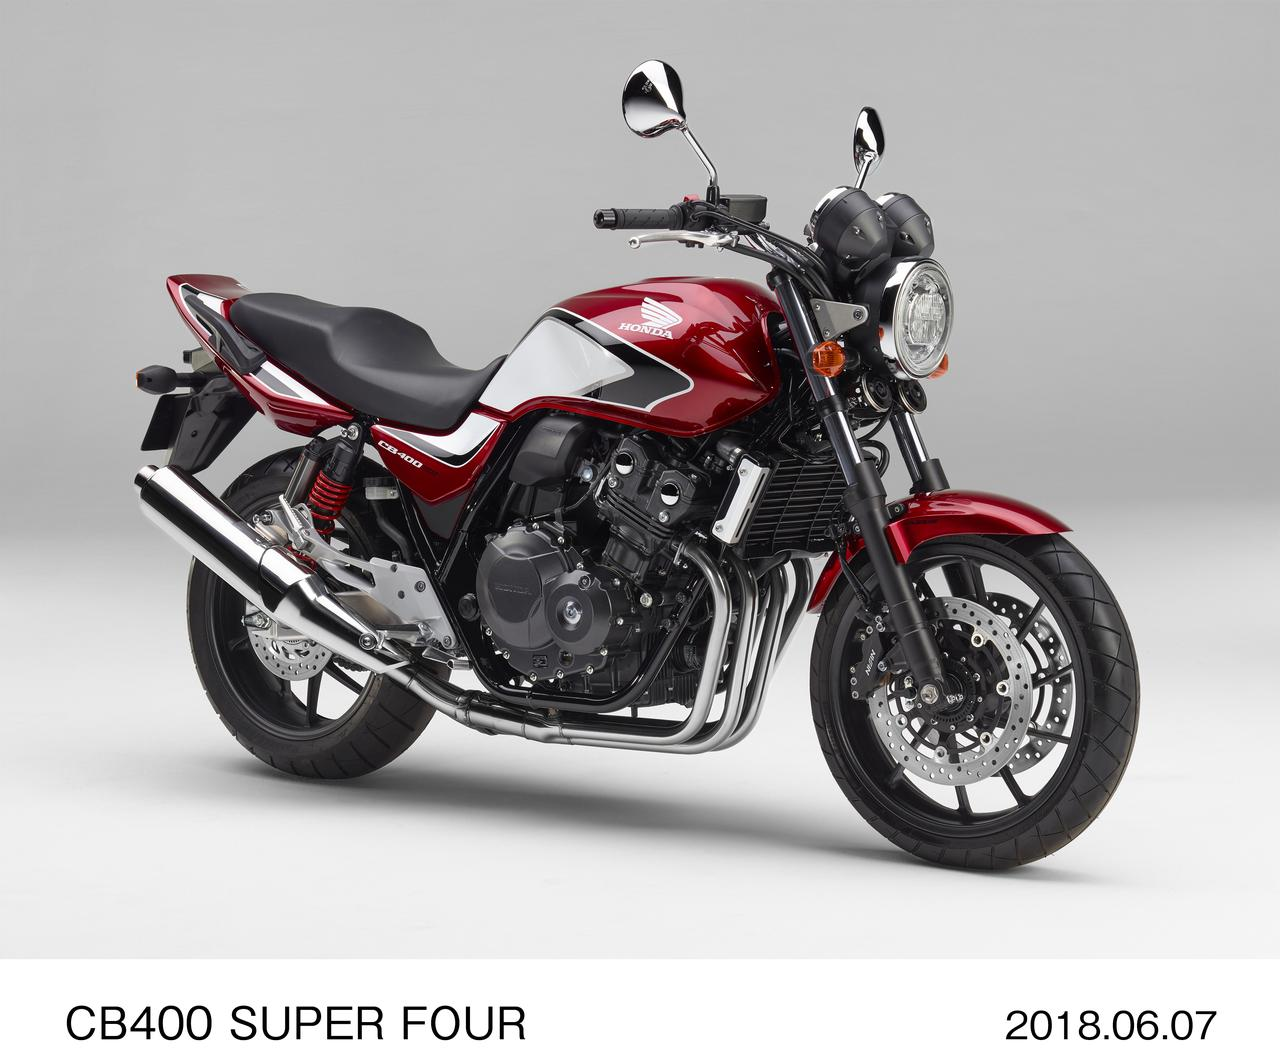 Honda CB400 SUPER FOURとHonda CB400 SUPER BOL D'ORに新色を追加して6月15日に発売!